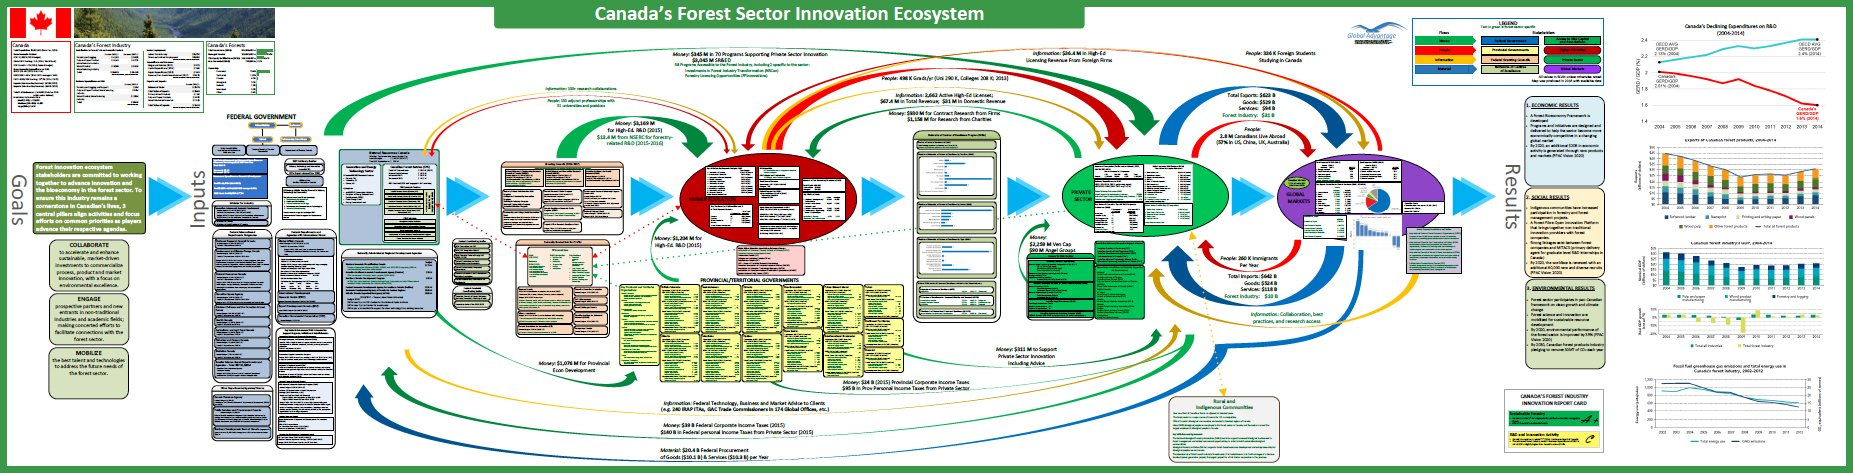 Forest Sector